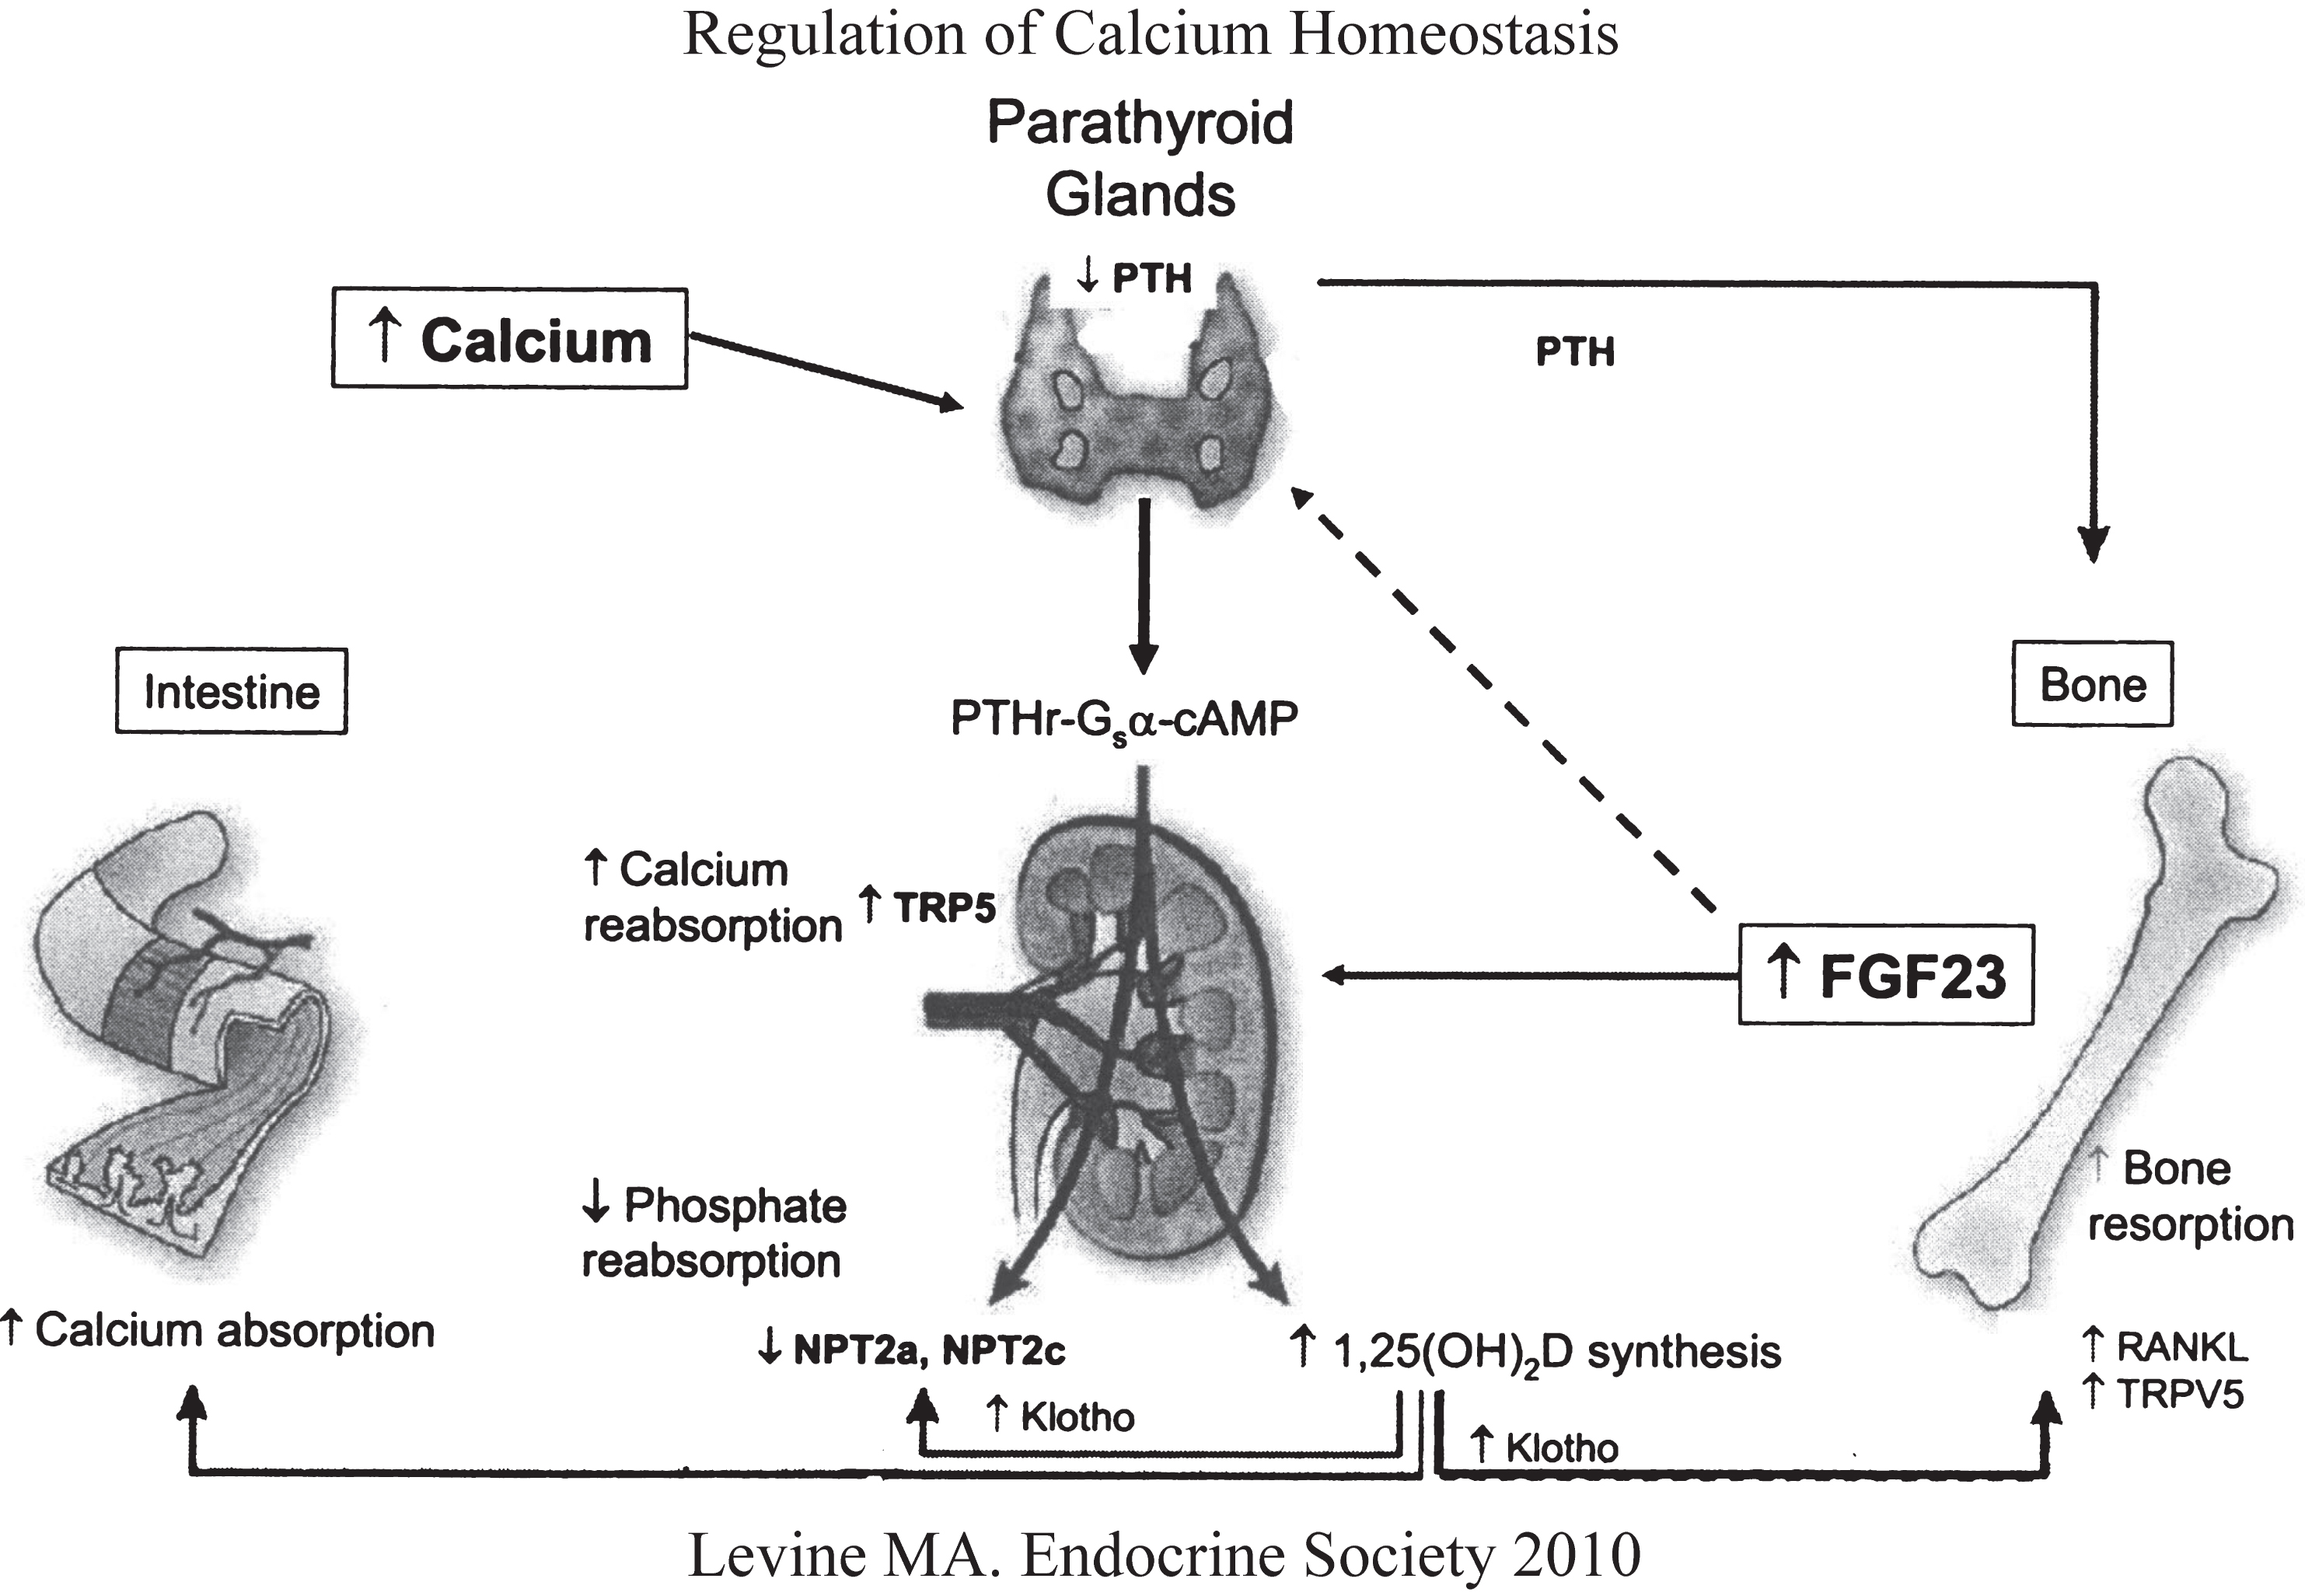 Geic Disorders Of Calcium Phosphorus And Bone Homeostasis Ios. Regulation Of Calcium And Phosphate Homeostasis By The Parathyroid Glands Bone Kidney. Wiring. Bones In Calcium Homeostasis Diagram At Scoala.co